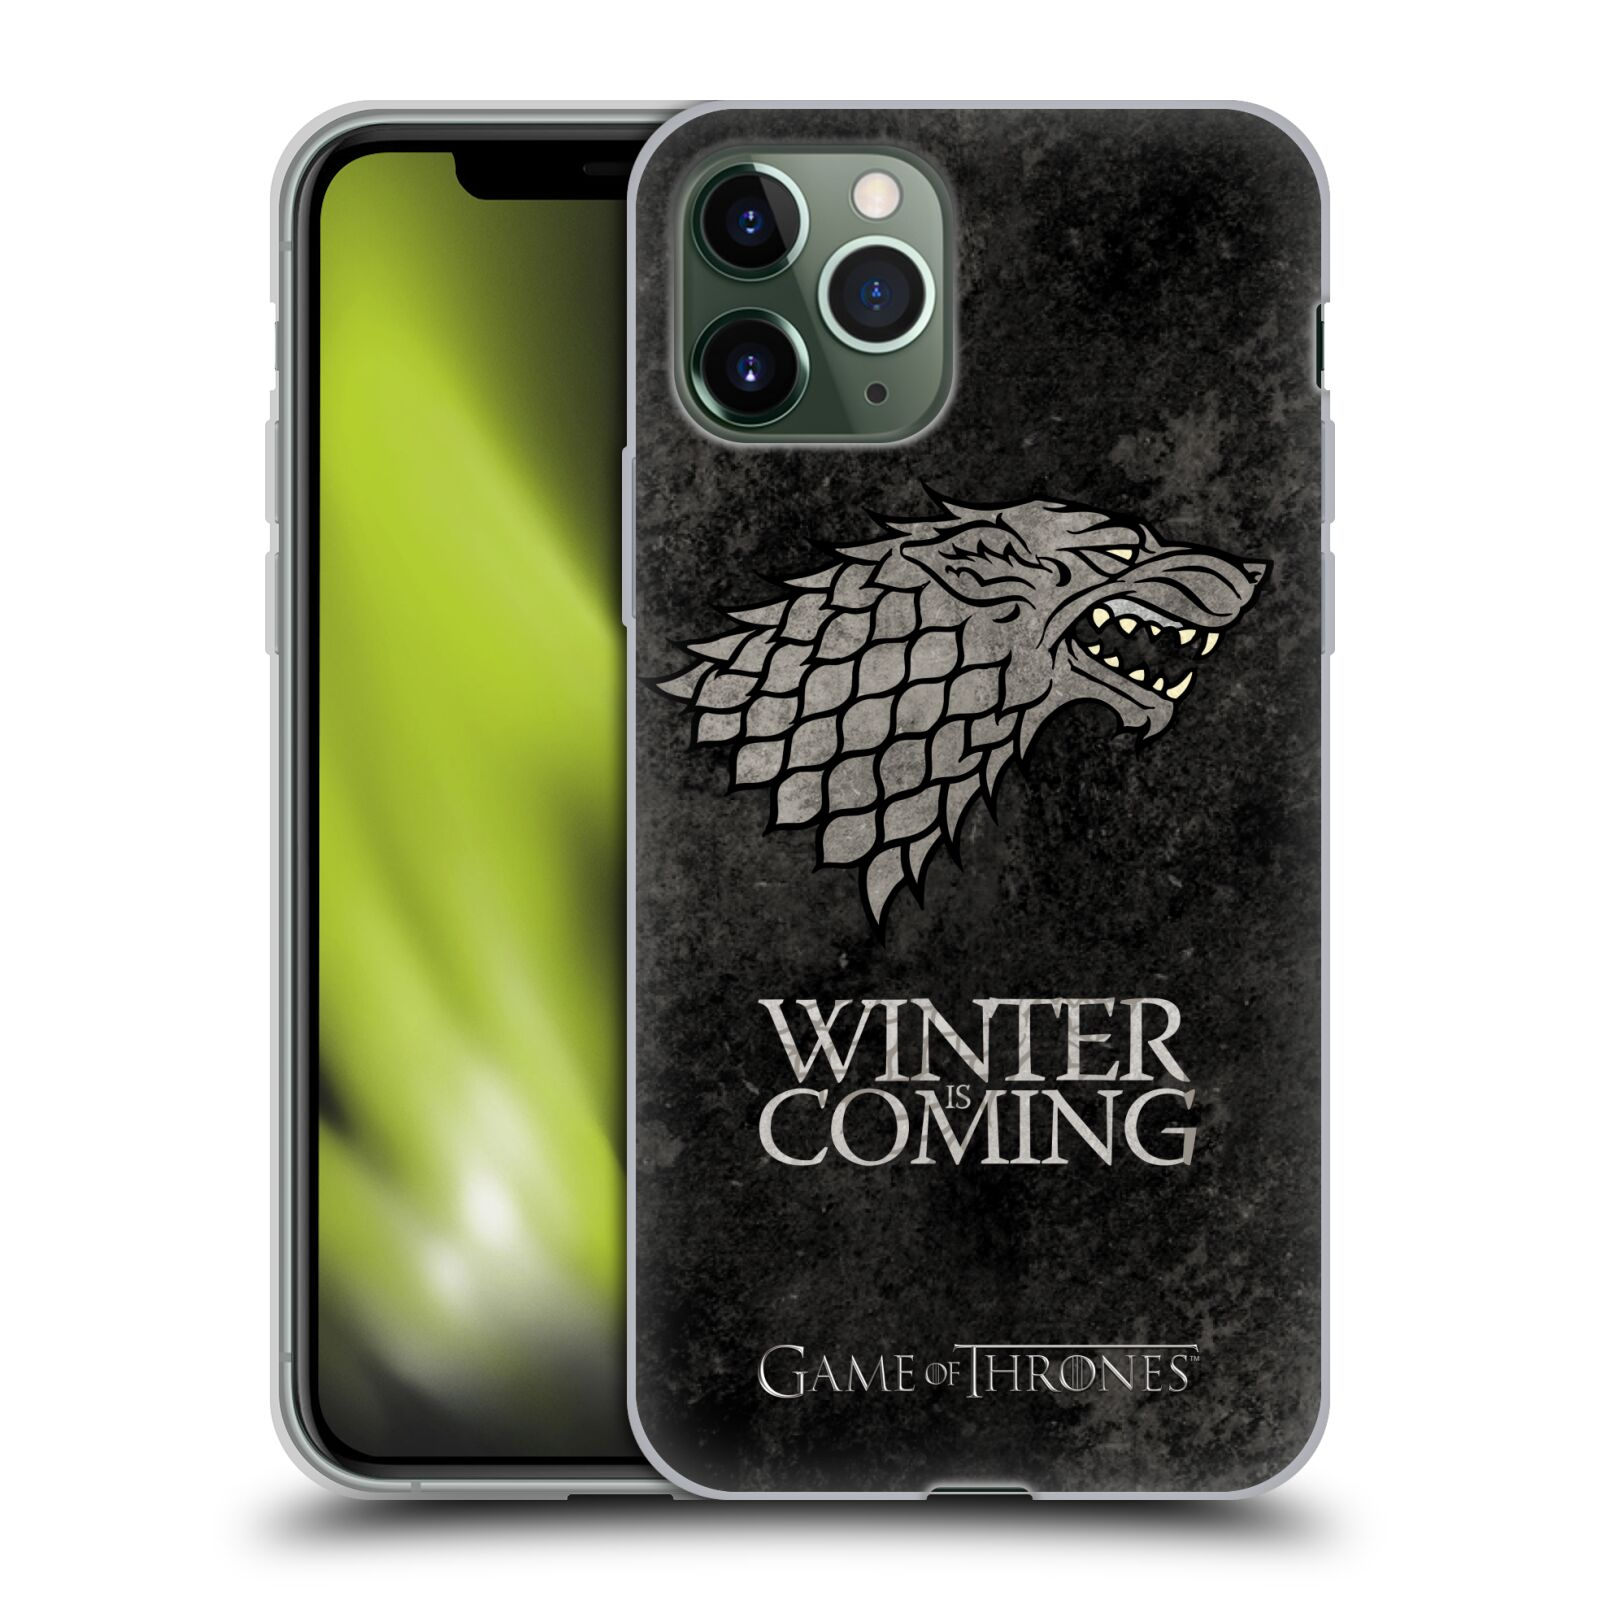 original krytu na iphone 8 plus , Silikonové pouzdro na mobil Apple iPhone 11 Pro - Head Case - Hra o trůny - Stark - Winter is coming